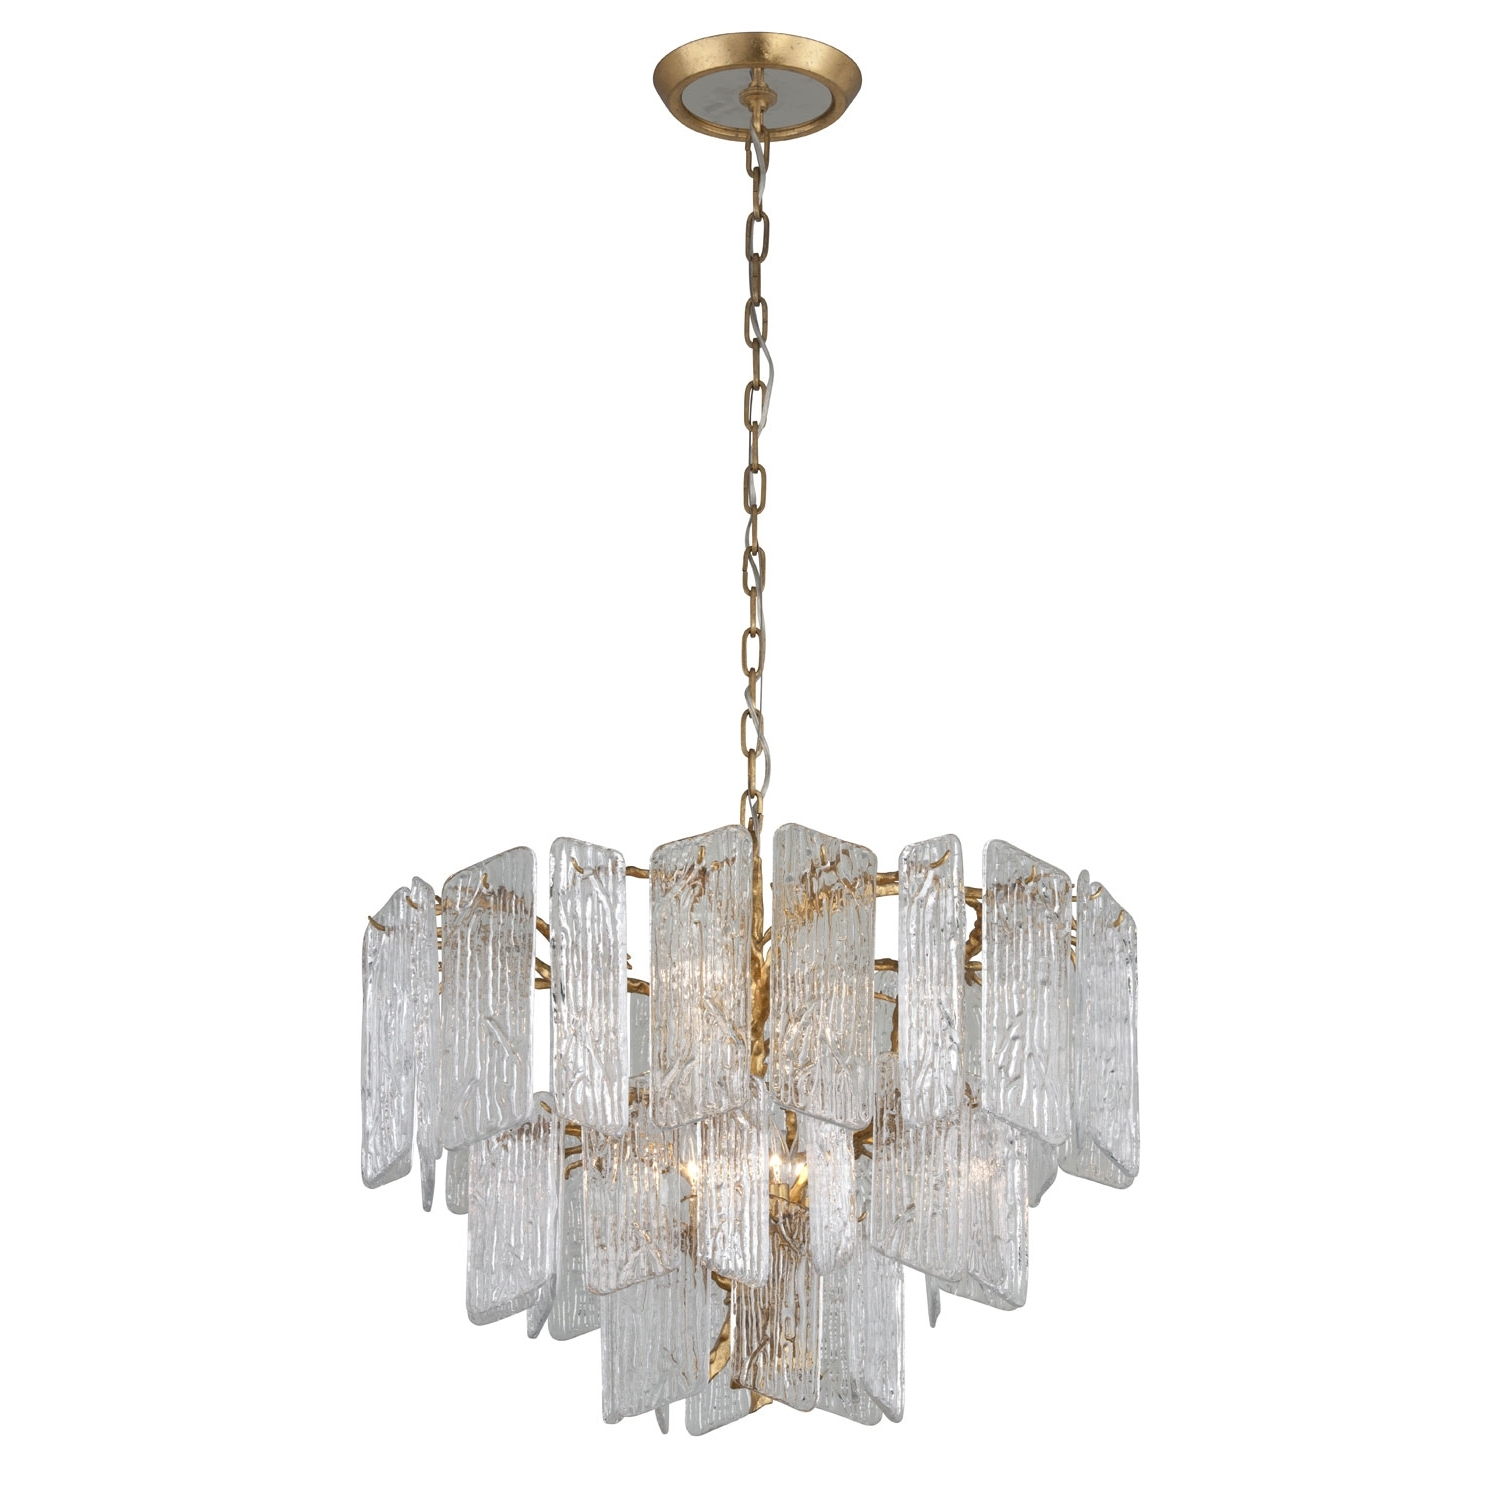 Art Deco Chandelier Throughout Fashionable Art Deco Chandeliers & Lighting (View 4 of 20)